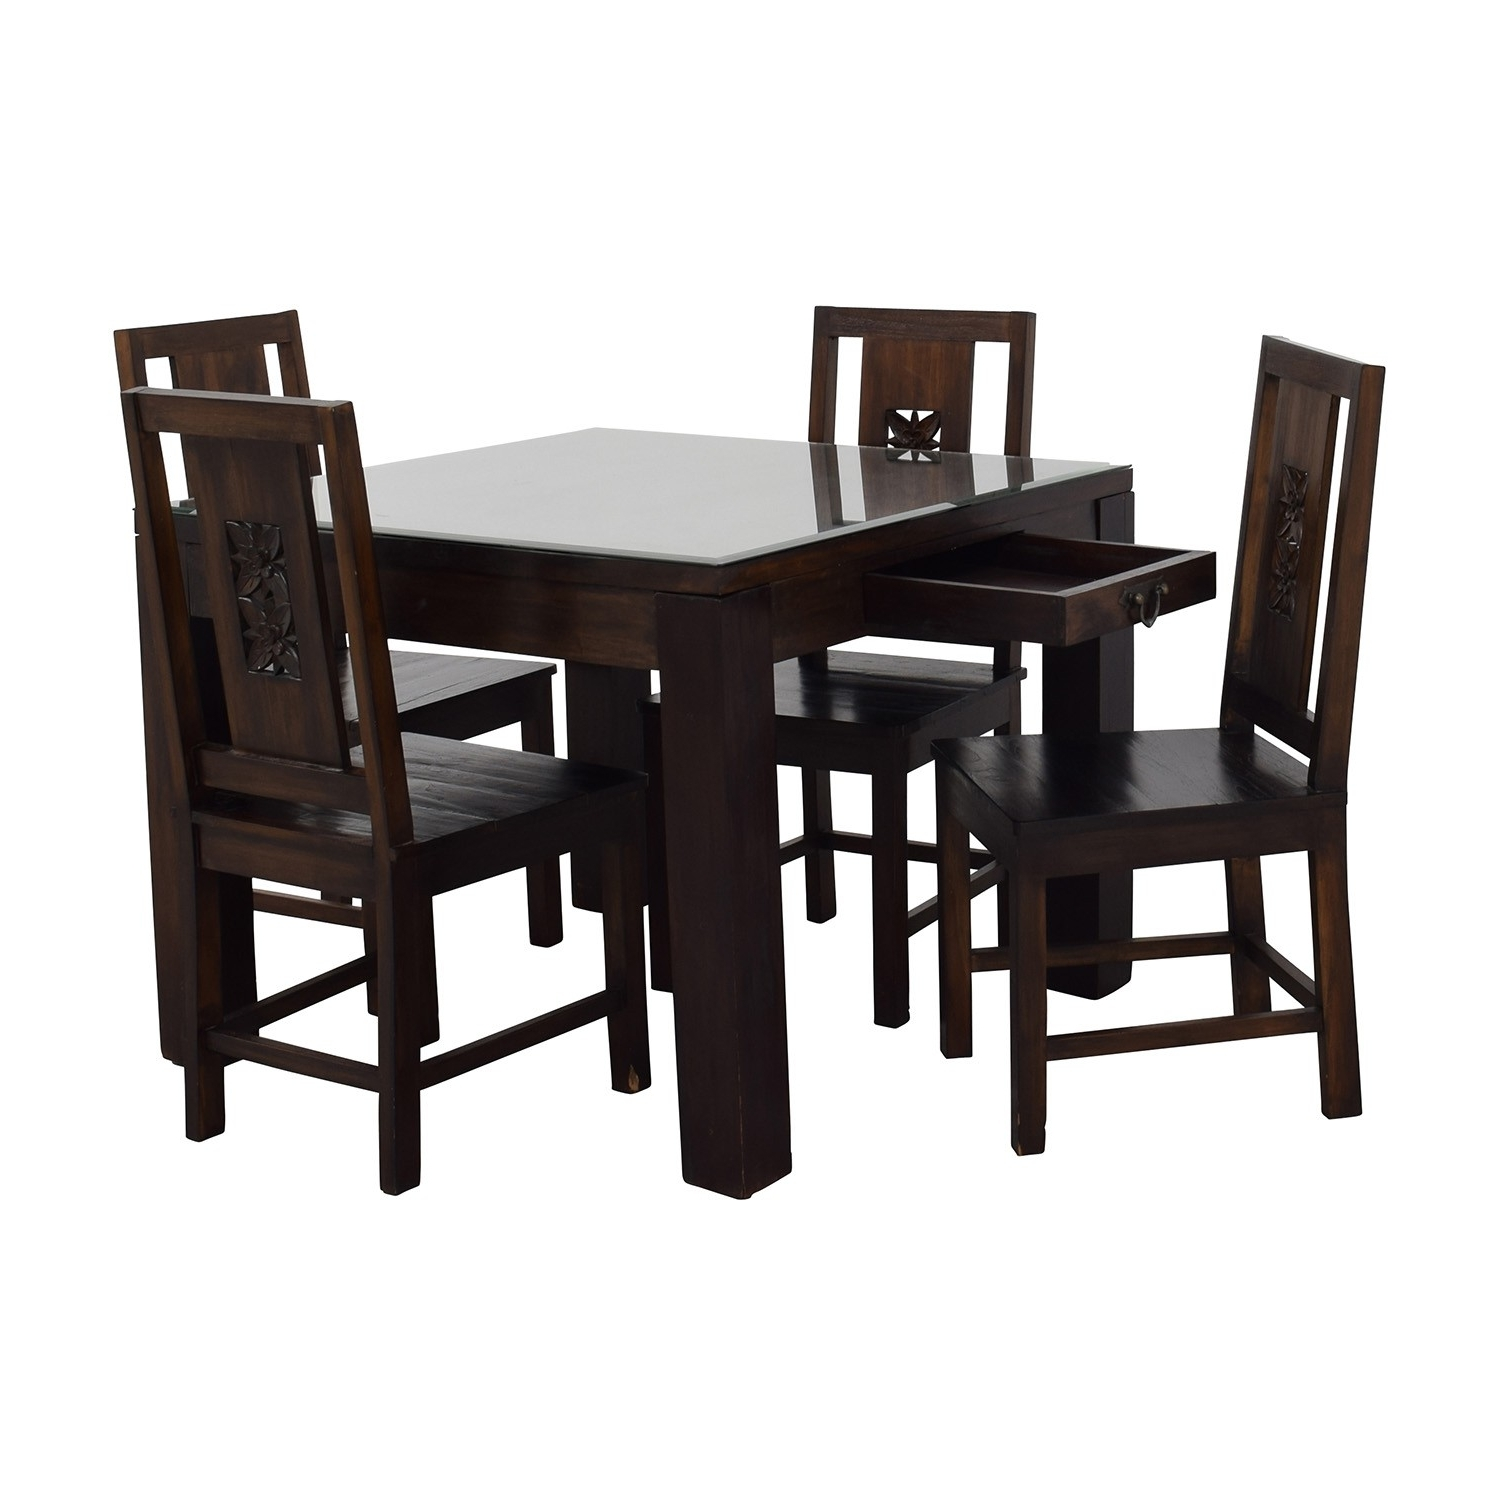 Balinese Dining Tables In Well Known Used Dining Table Sets Best Of Off Balinese Teak Dining Table Set (View 4 of 25)